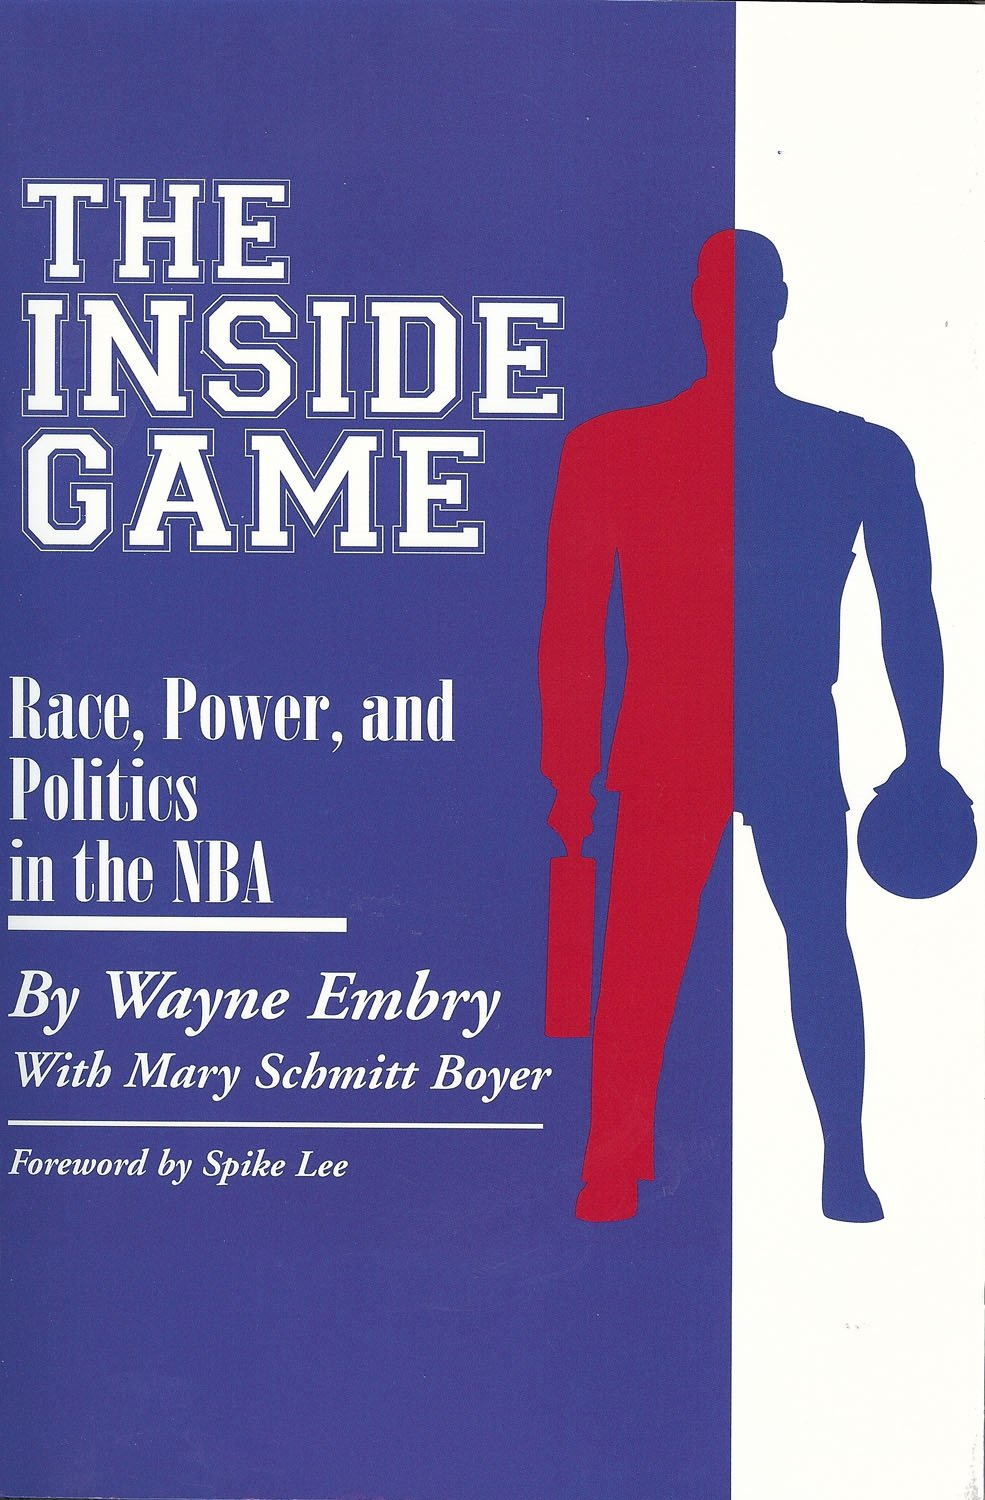 Inside Game: Race, Power, and Politics in the NBA (Ohio History and Culture (Paperback)) ebook